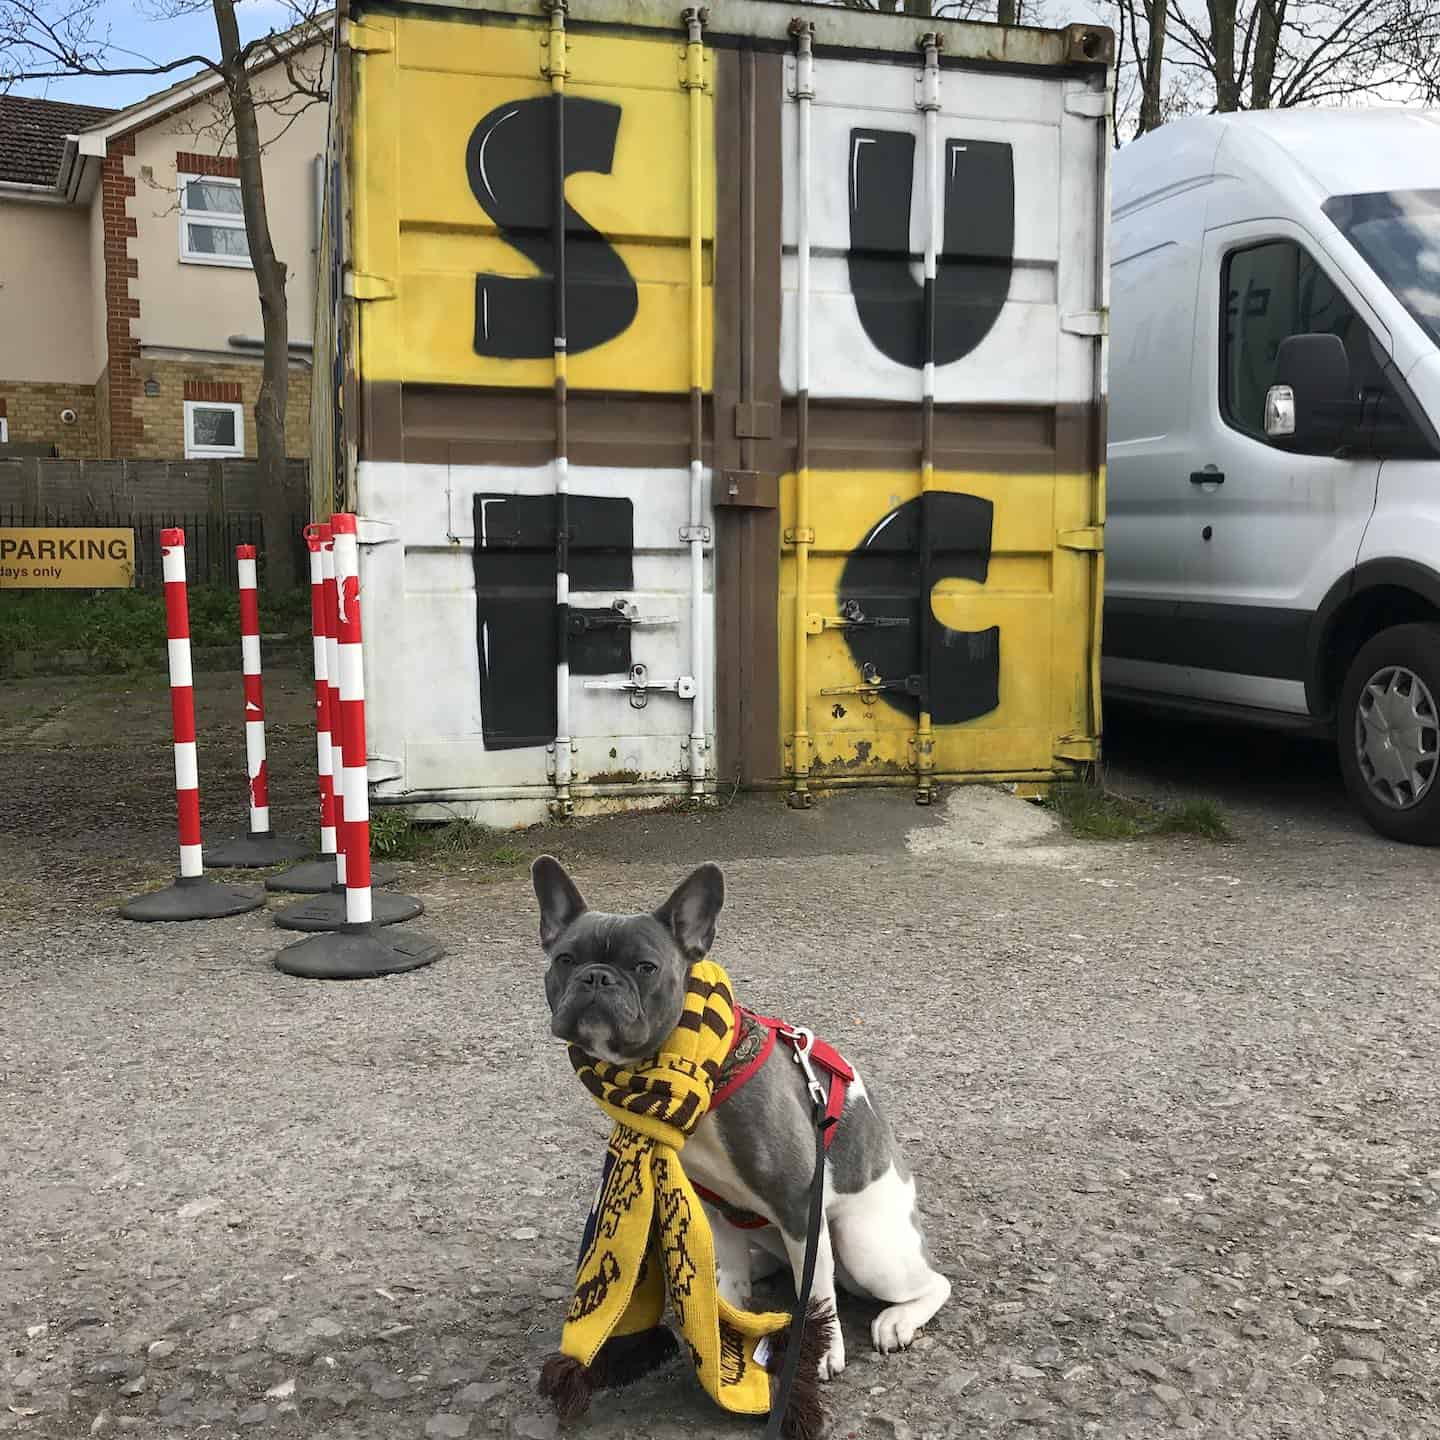 Dog-friendly Football Teams in London - Sutton United FC